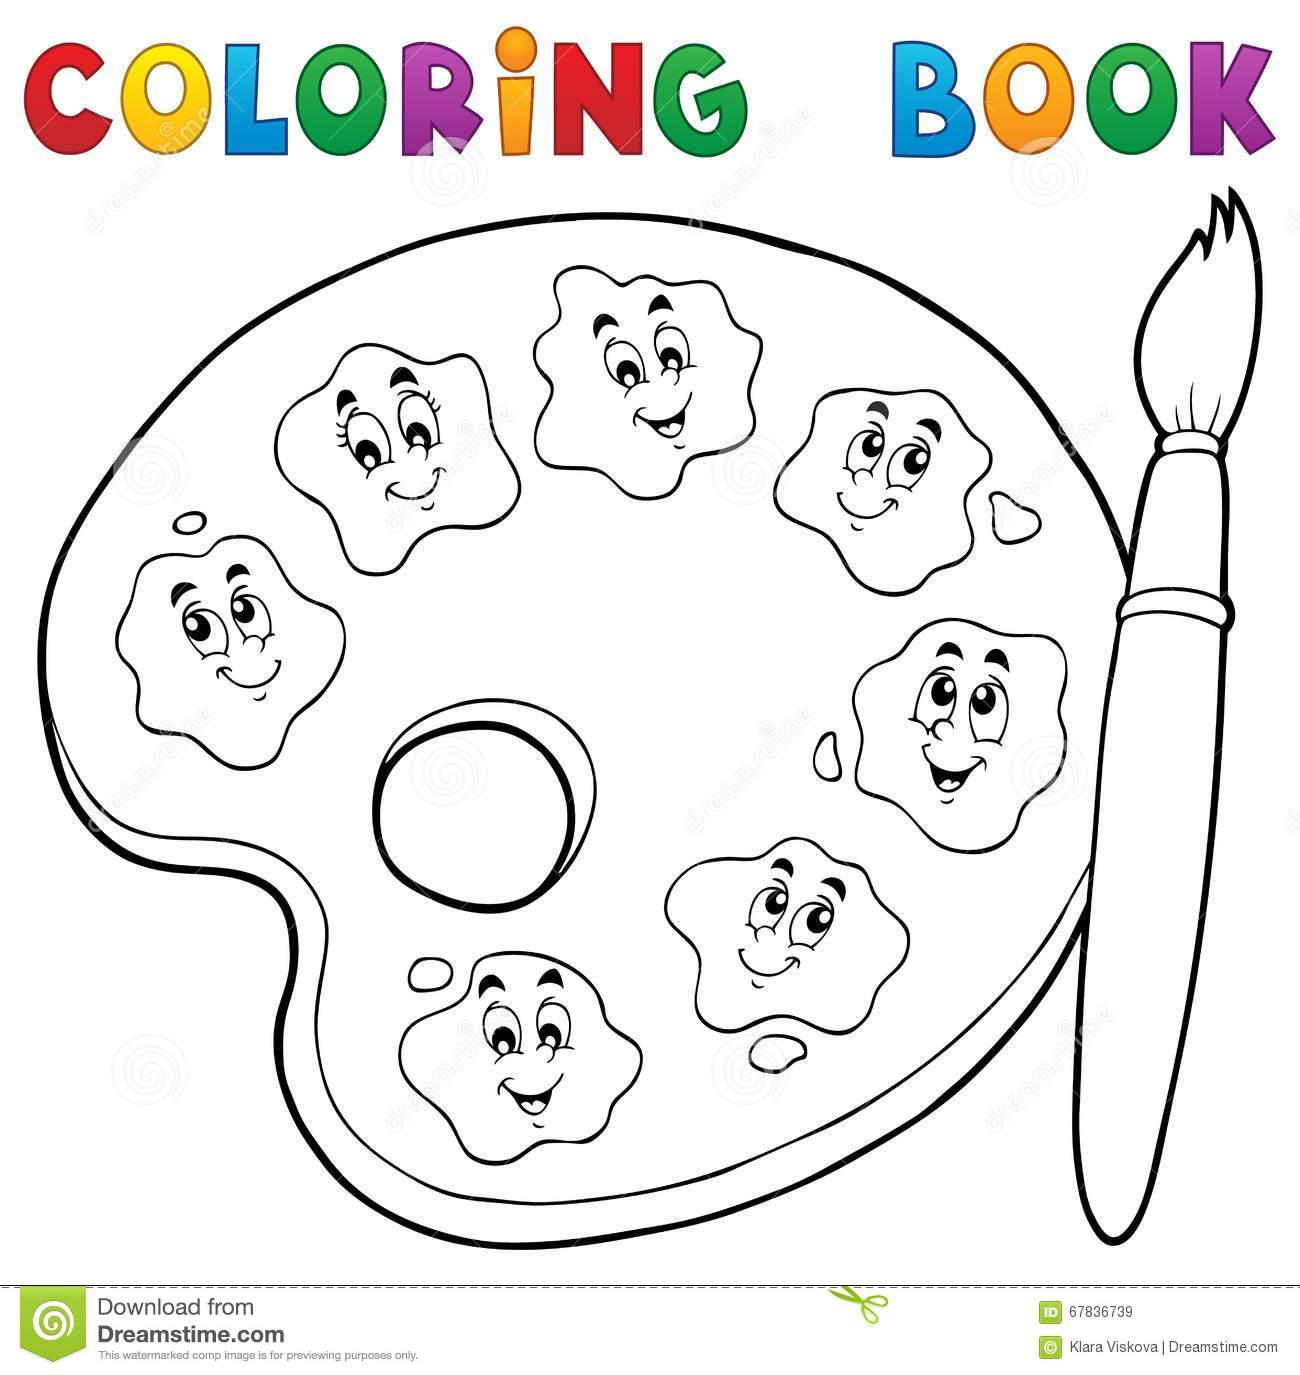 Th me 2 de palette de peinture de livre de coloriage illustration de vecteur illustration du - Palette dessin ...